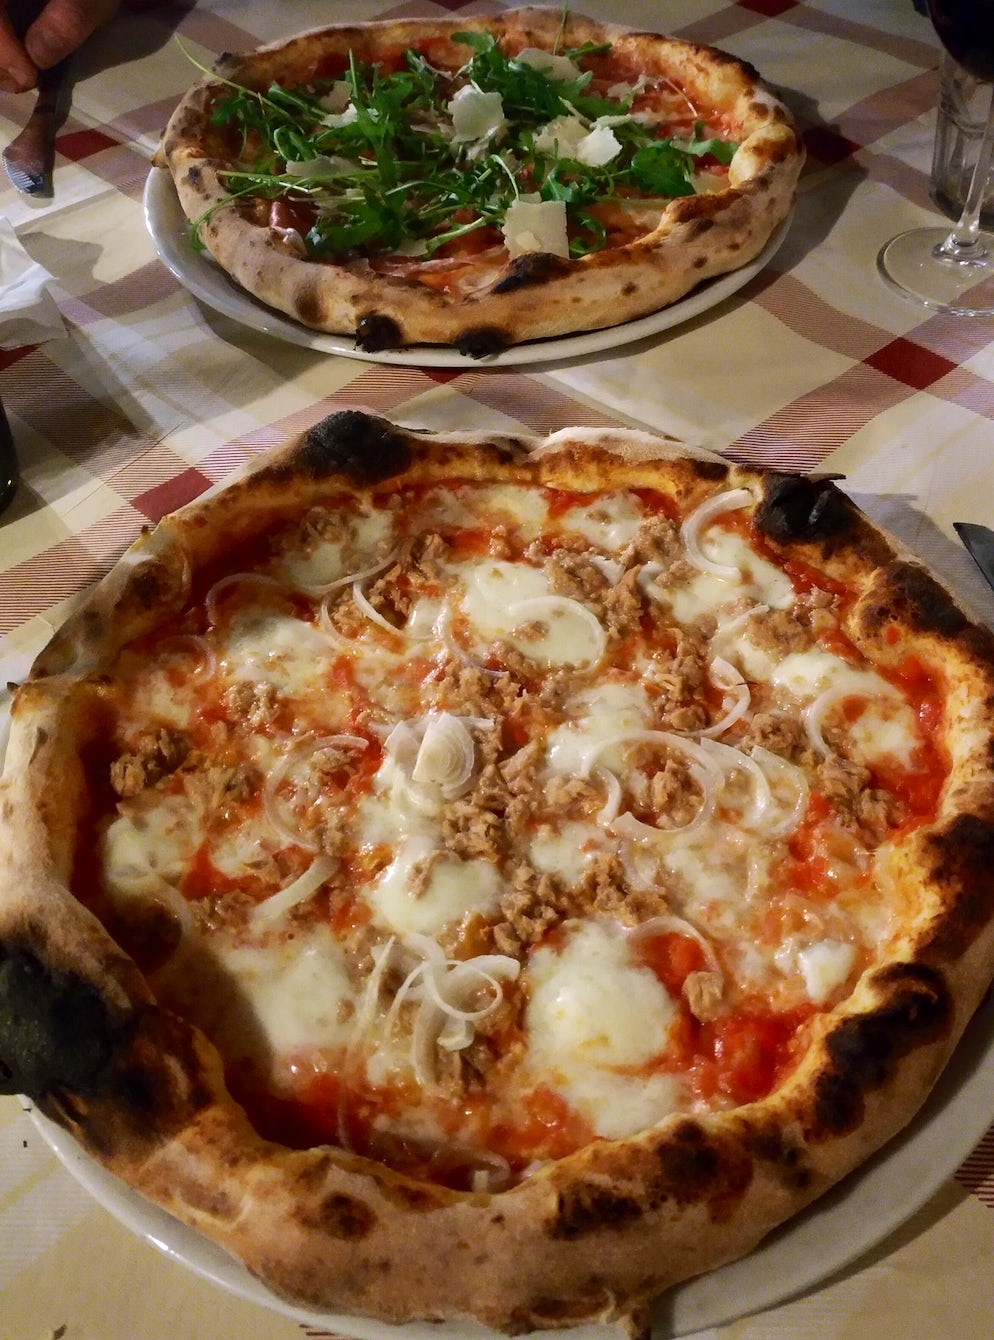 Pizza Tonno and Pizza Crudo e Rucola at Pizzeria Pulcinella